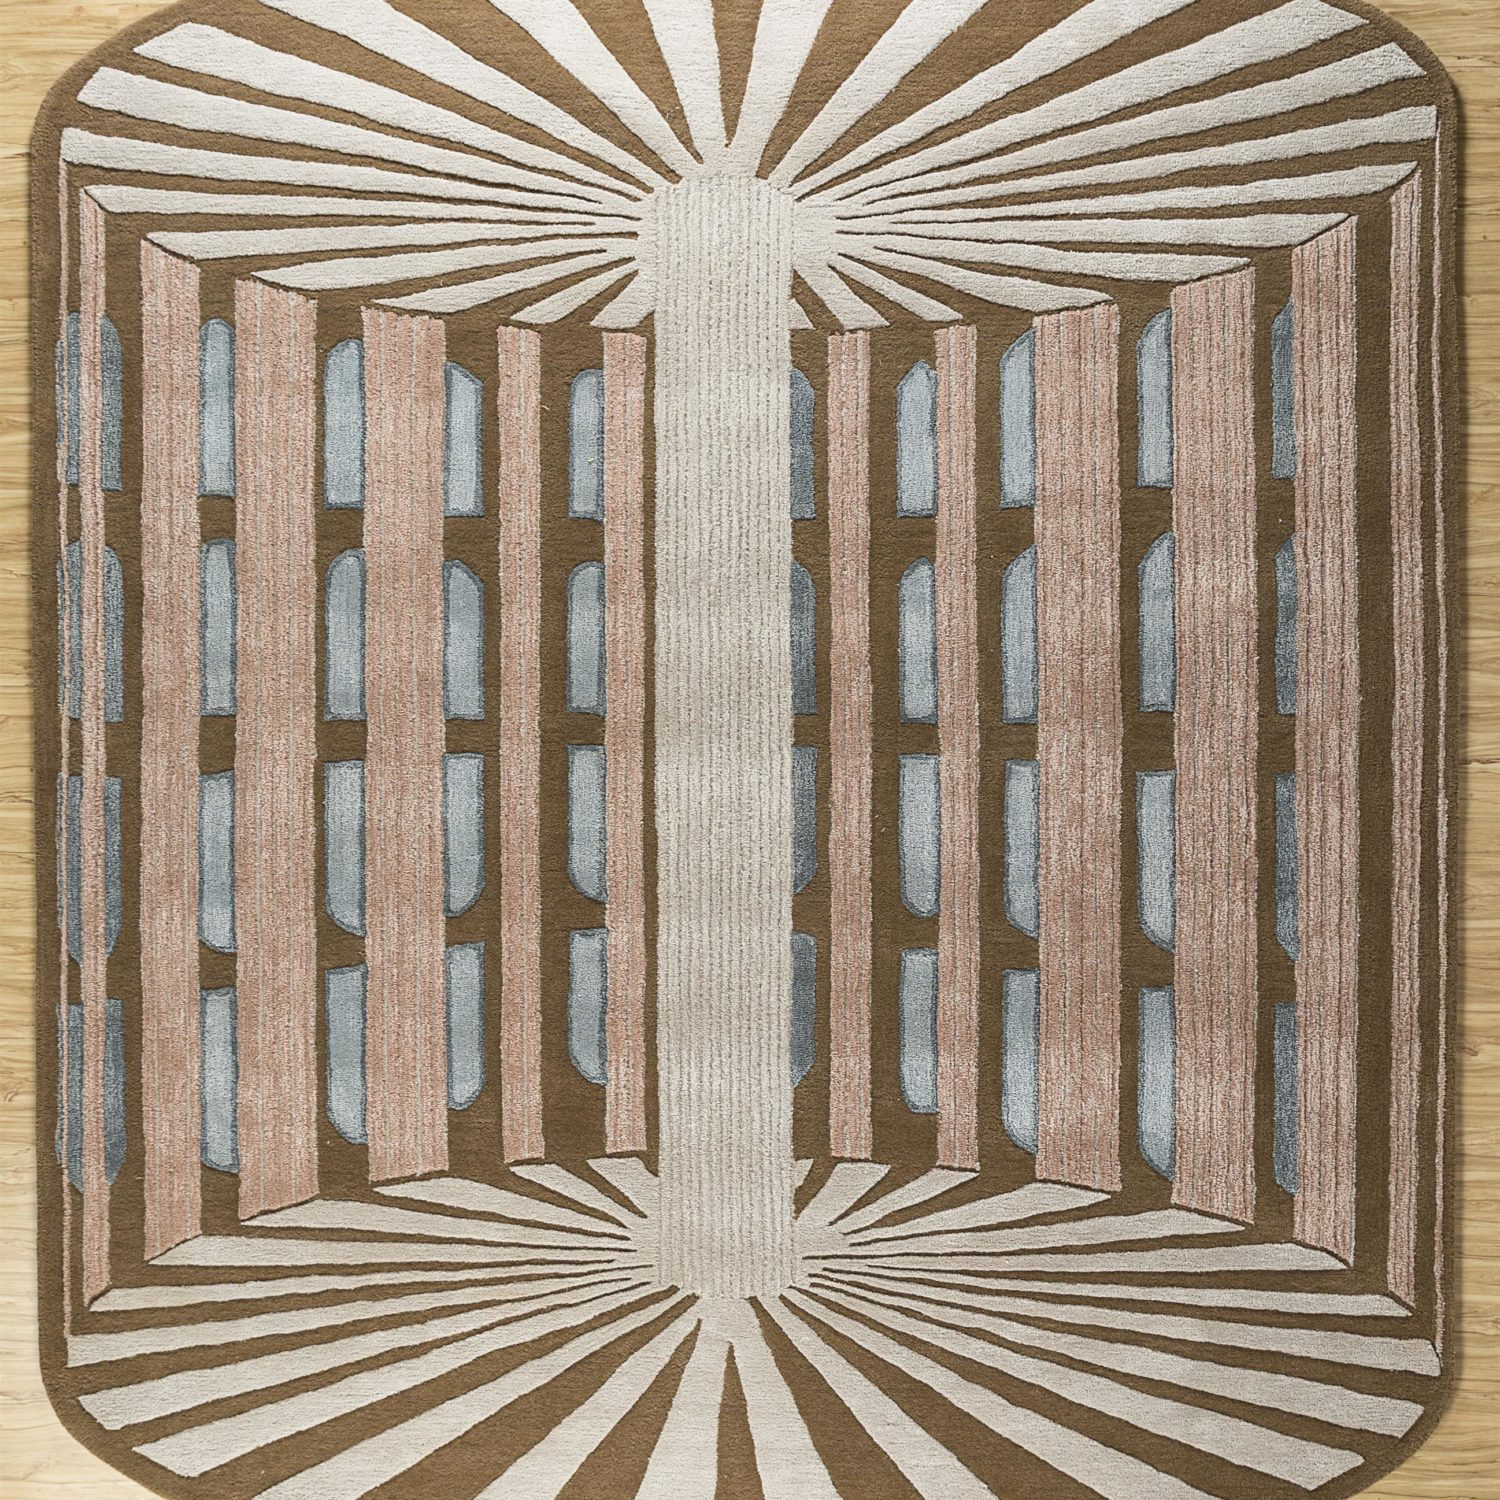 The rug brings alive the architectonical Sundial, the Jantar Mantra, built in the 18th Century.